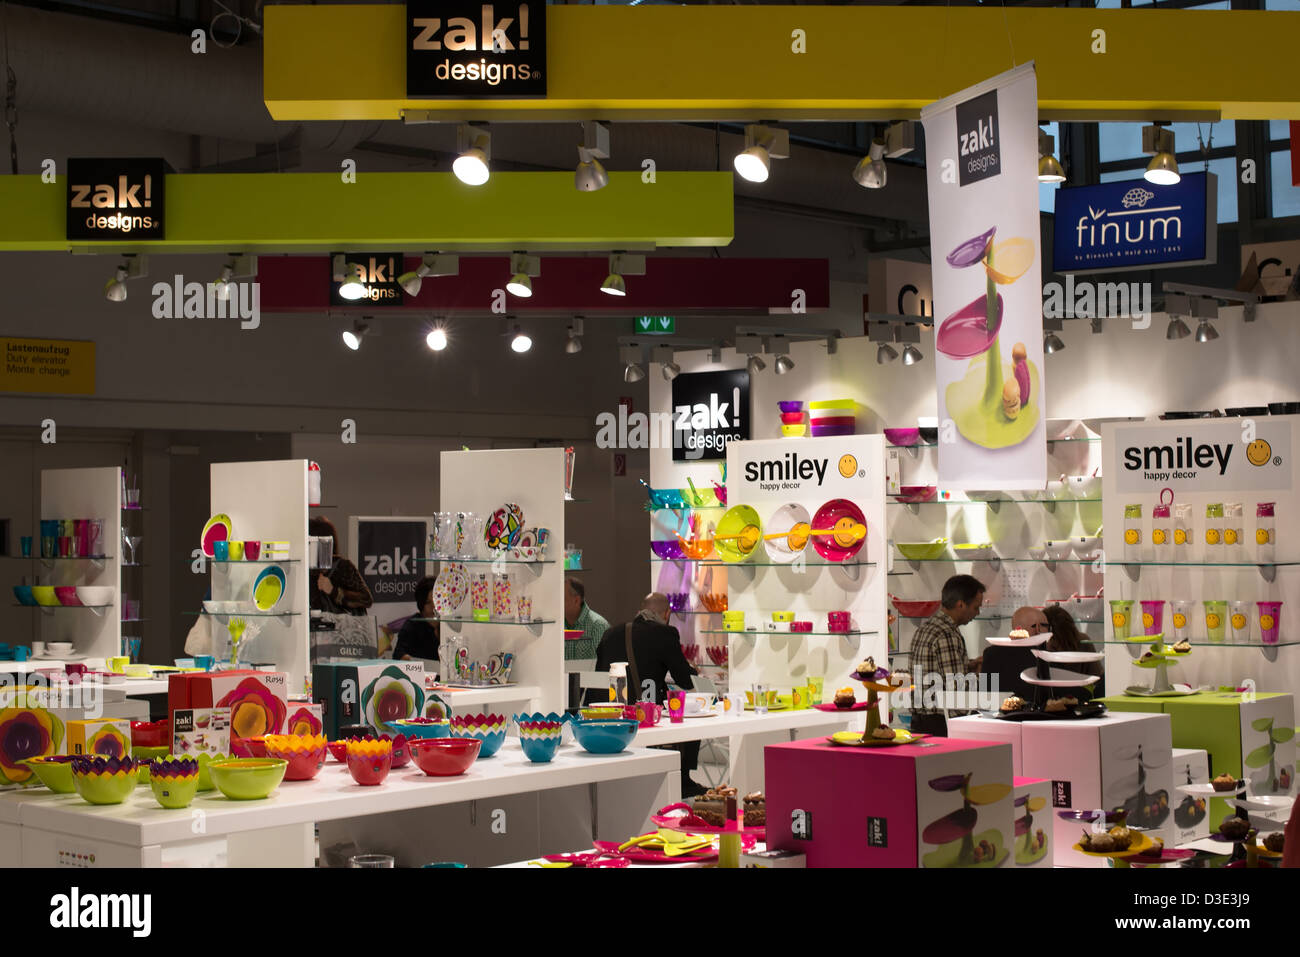 Zak Design booth of german company zak! designs on the ambiente trade fair on